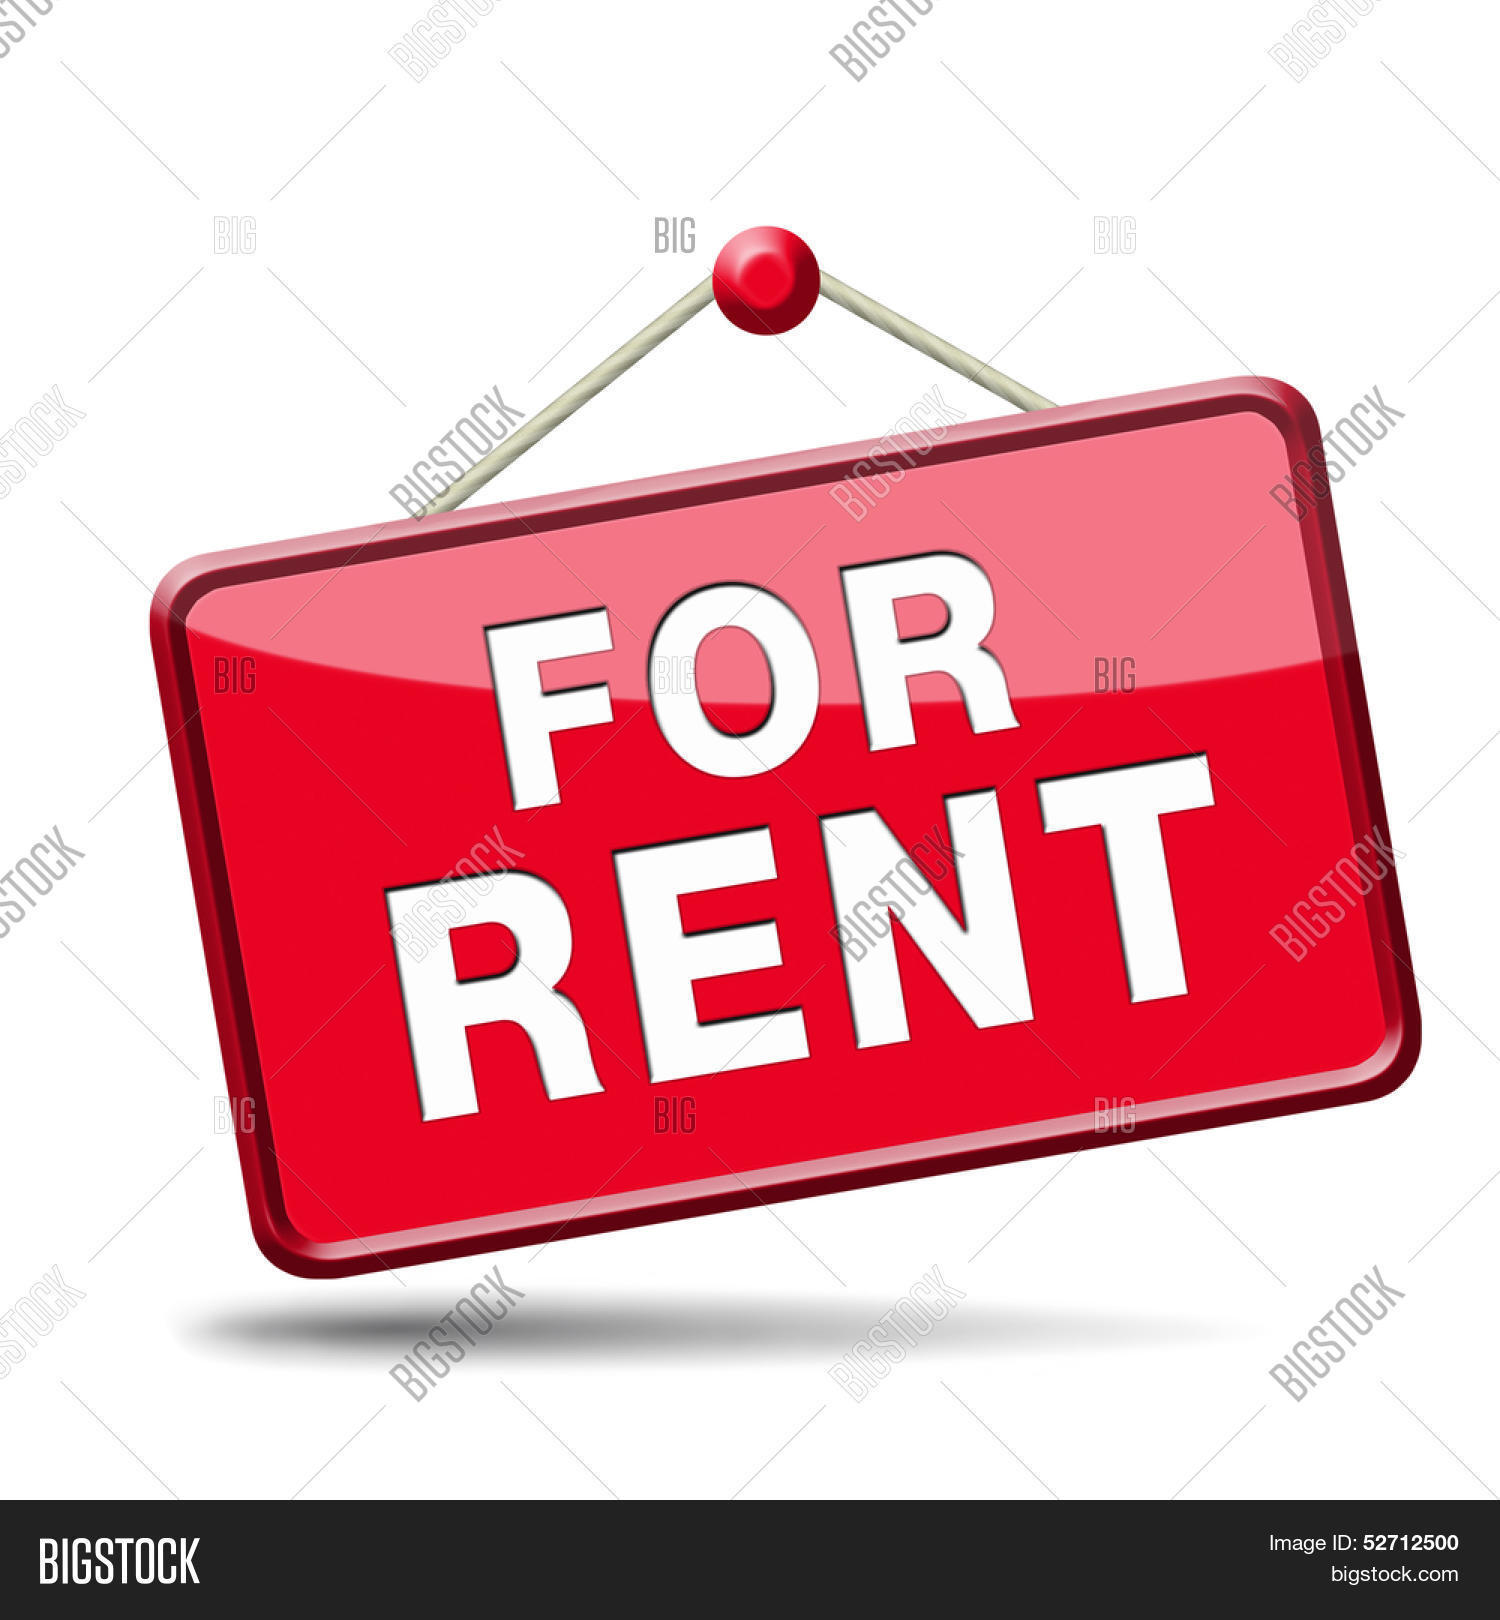 Free Houses For Rent: Apartment House Rent Image & Photo (Free Trial)